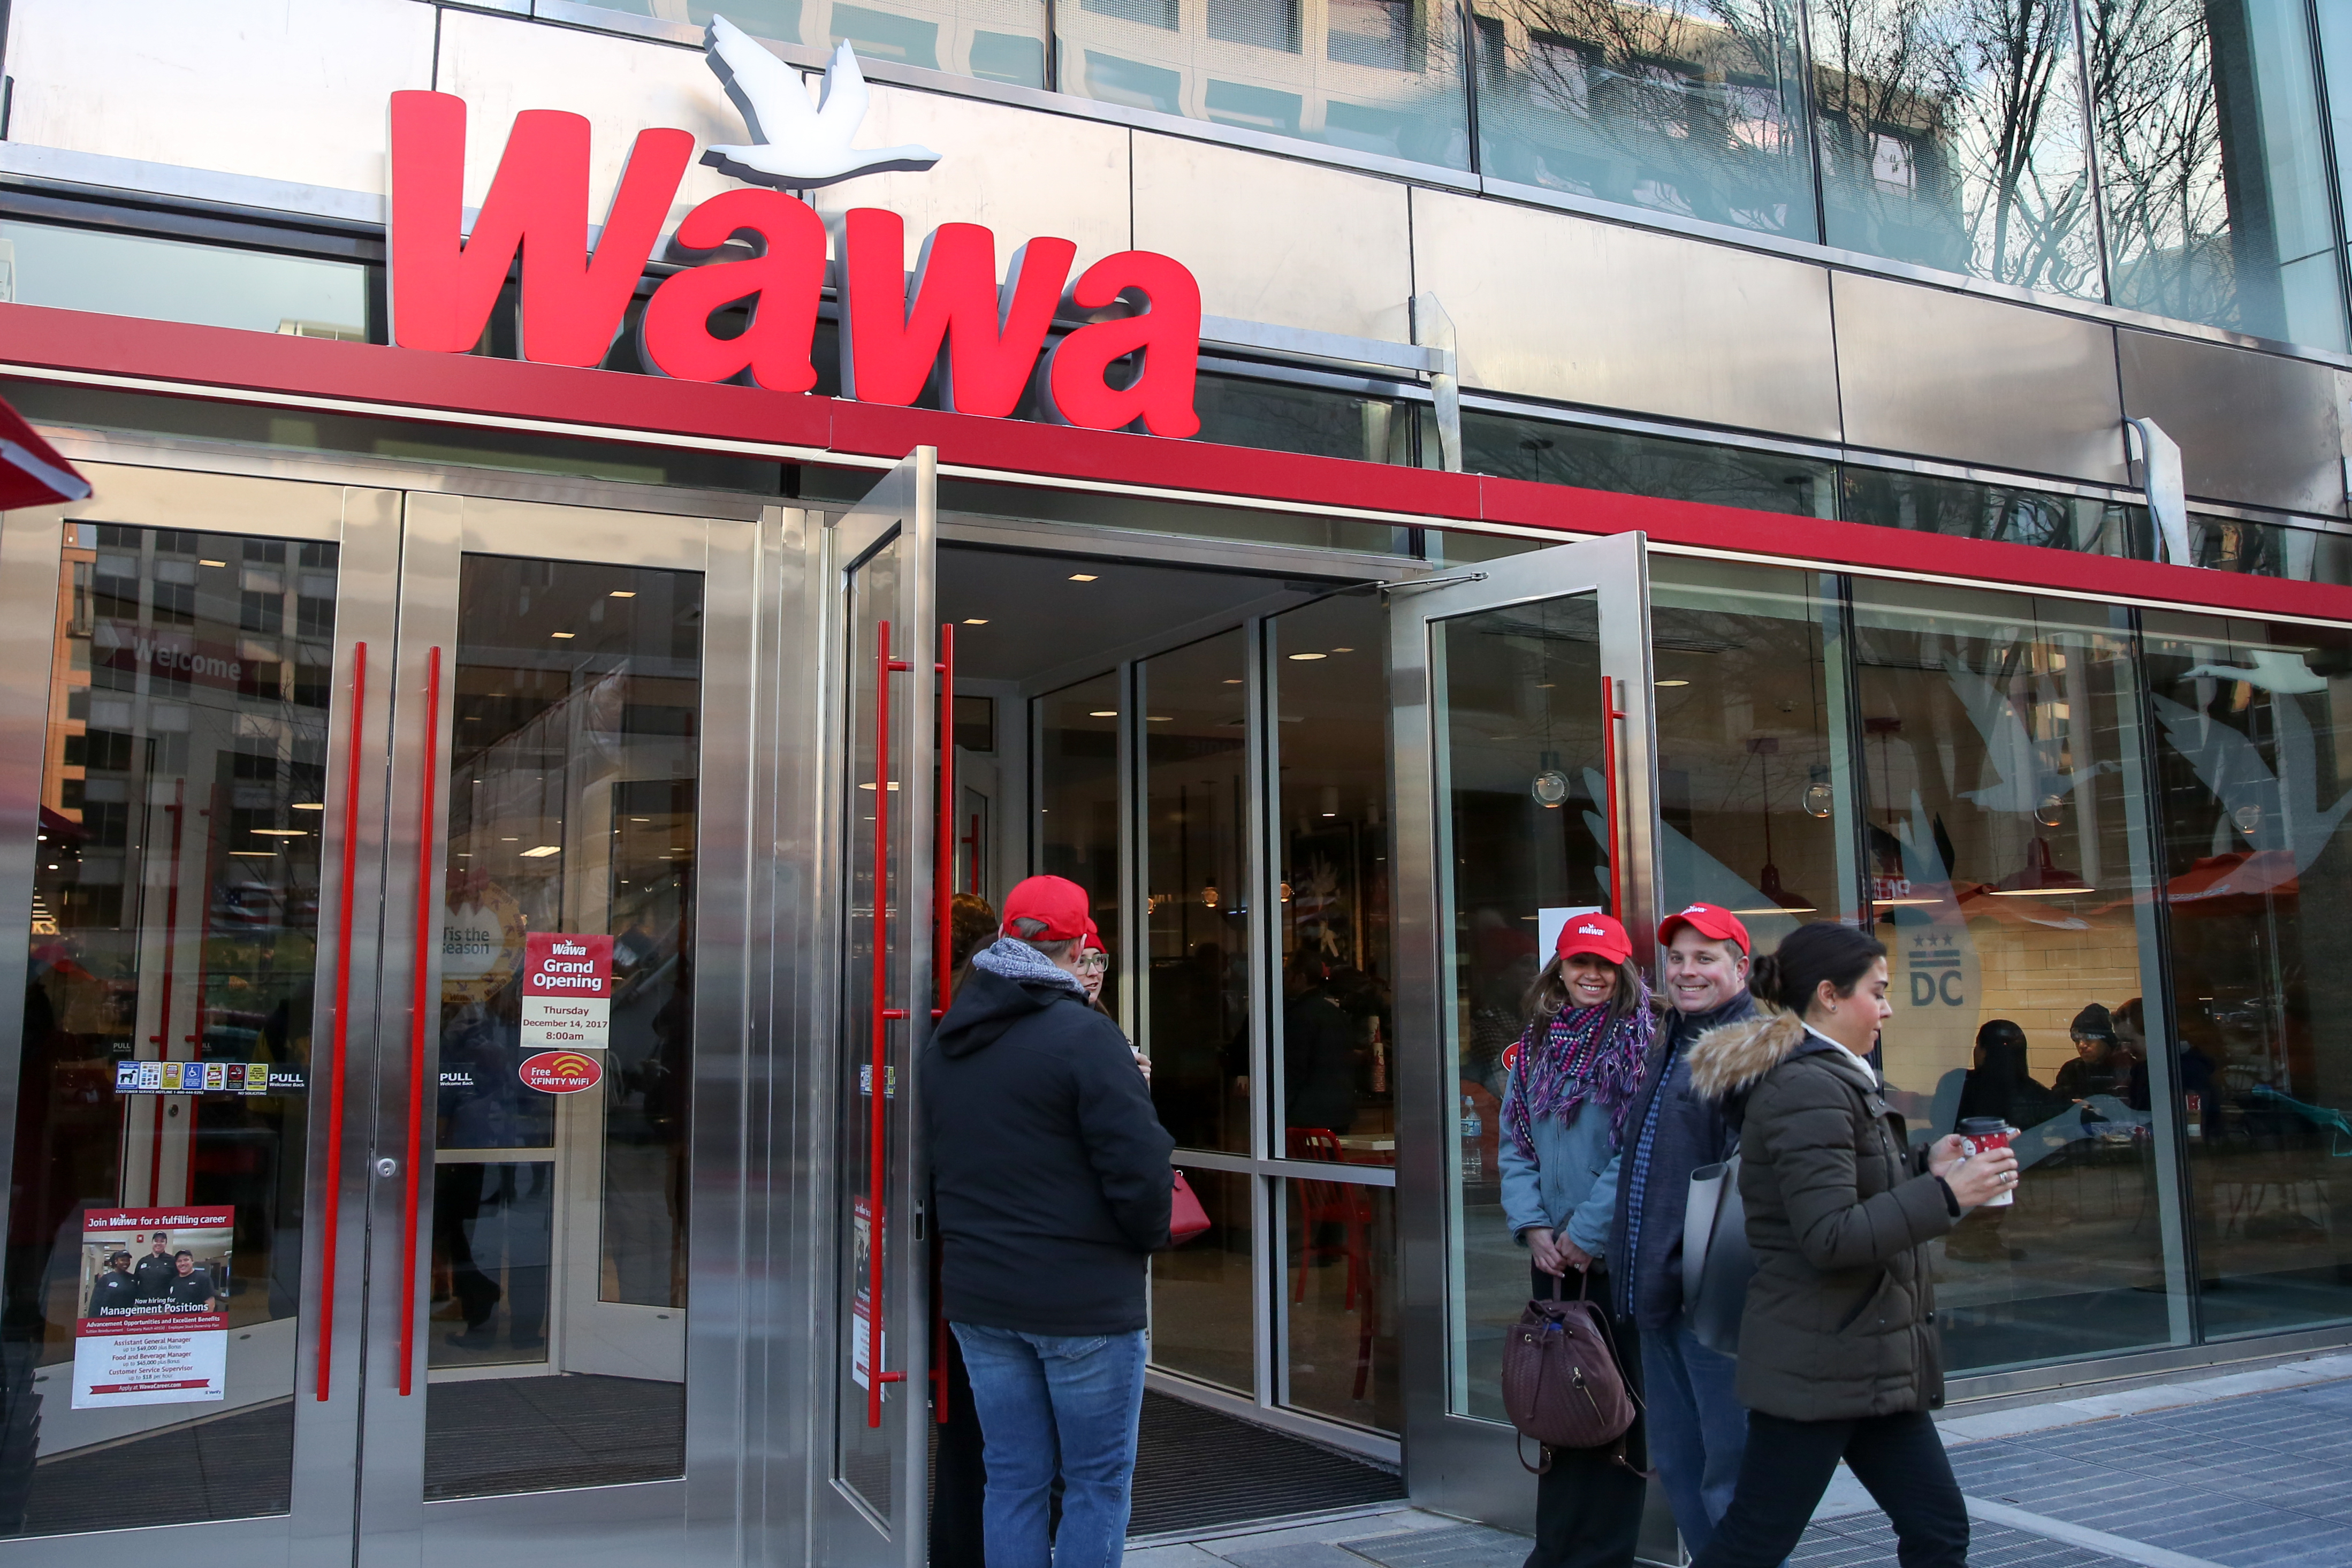 According to a press release, delivery favorites so far include Wawa macaroni and cheese, hoagies, soups and sides. (Image: Amanda Andrade-Rhoades/ DC Refined)